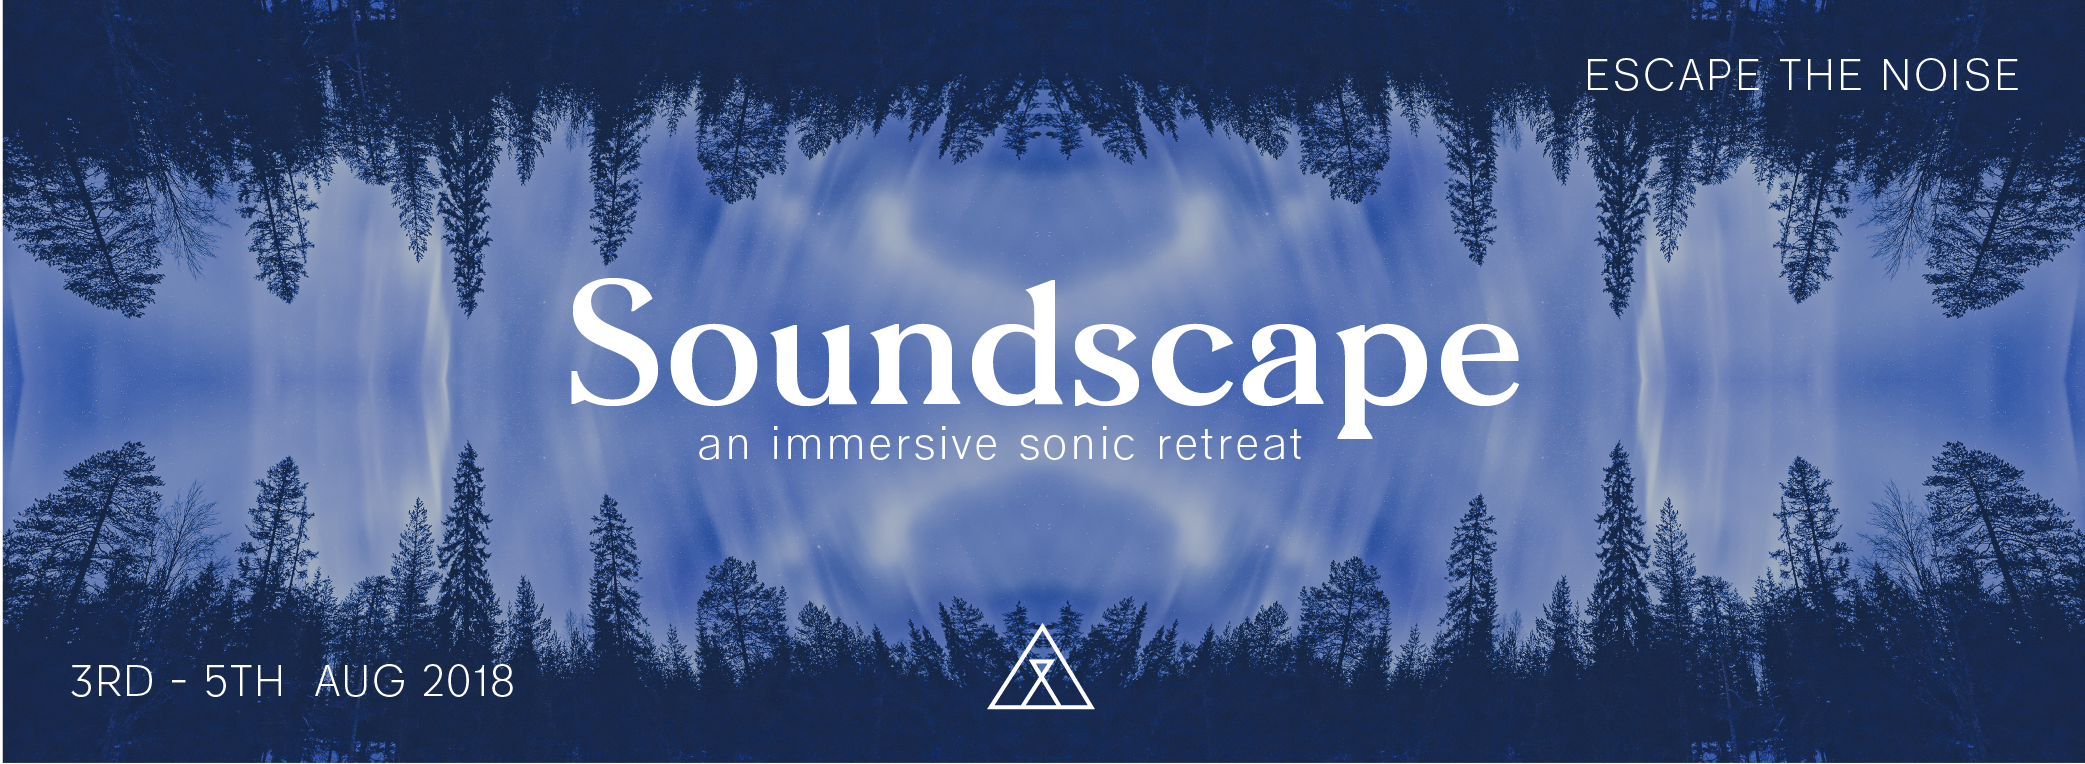 SOUNDSCAPE_Web Header1